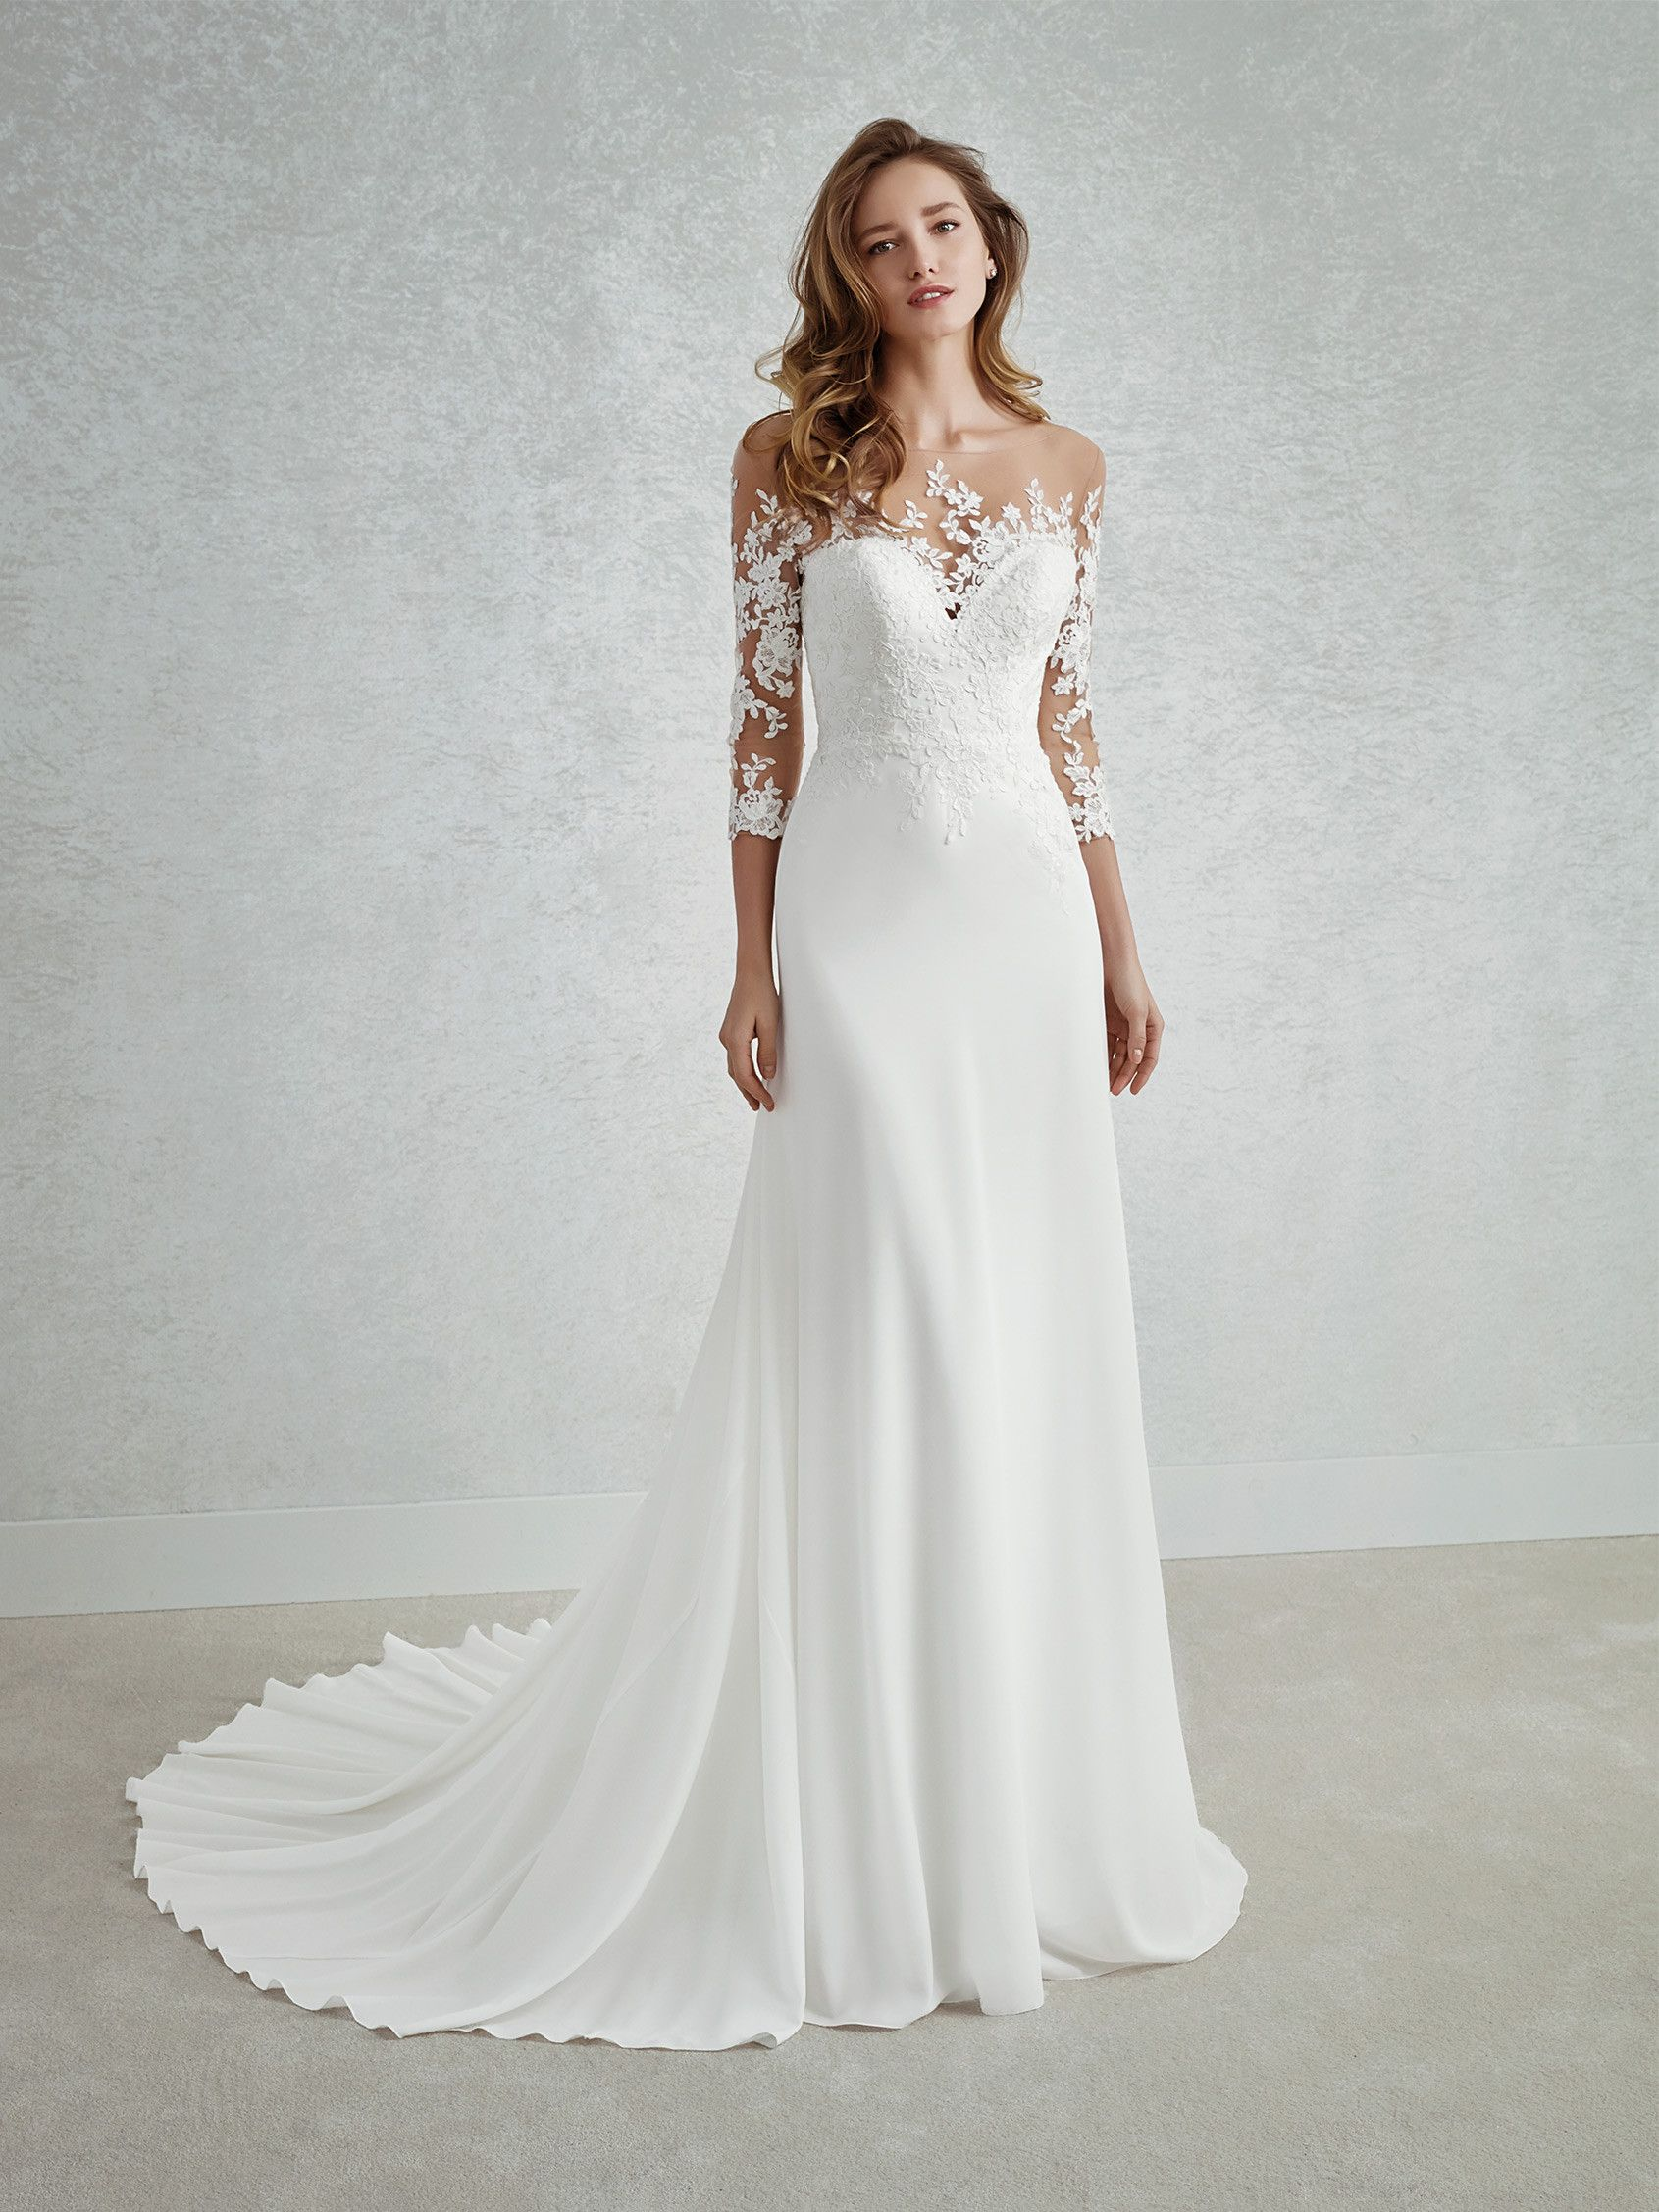 b77c2909 This exquisite wedding dress combines a georgette skirt with a spectacular  bodice featuring an illusion neckline and back. As with the bodice, ...